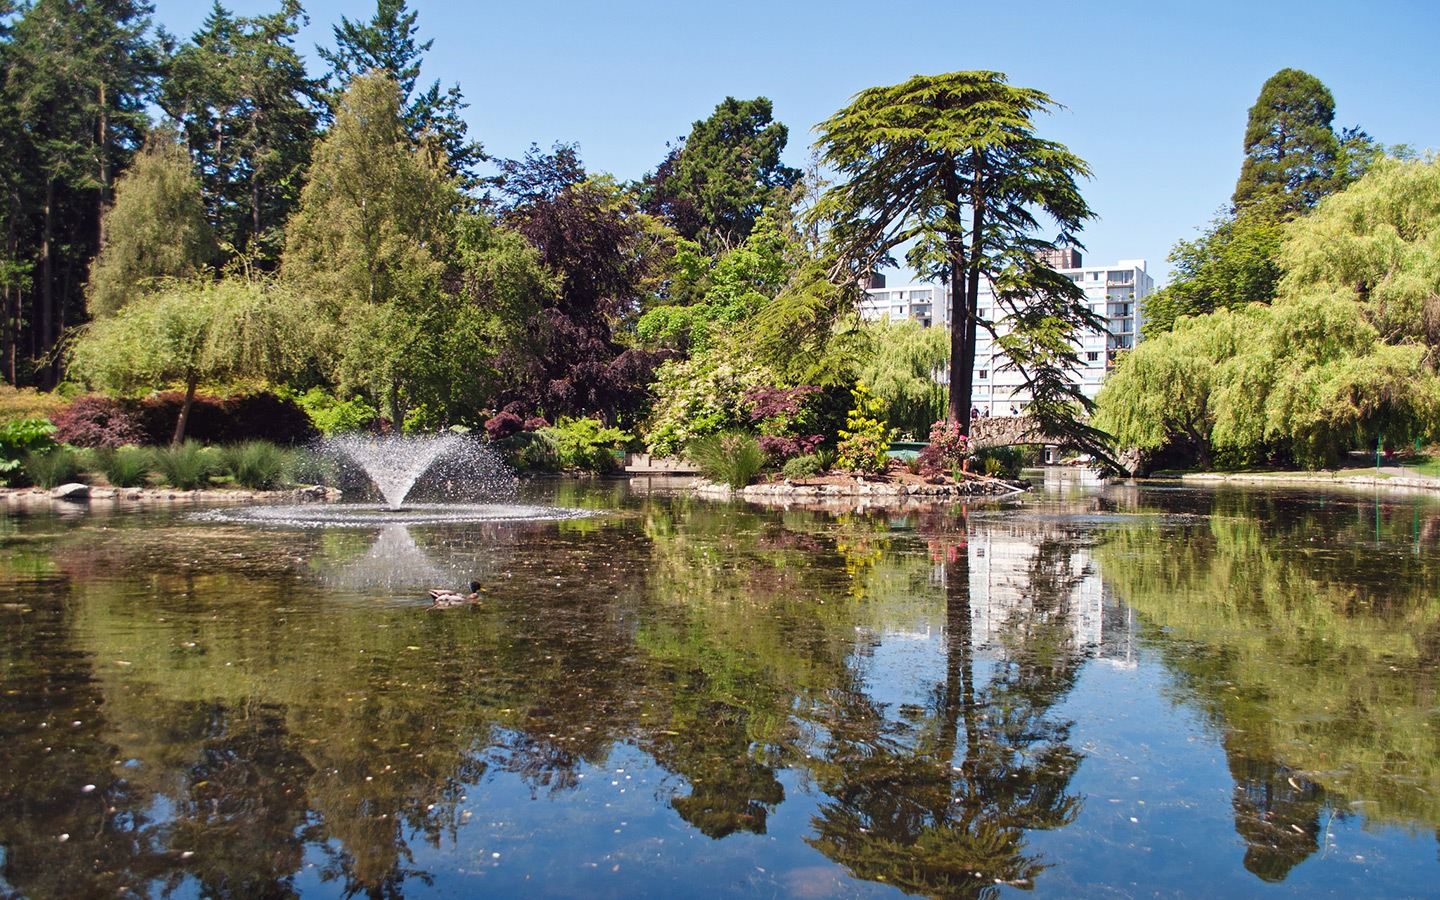 Beacon Hill Park in Victoria, British Columbia, Canada